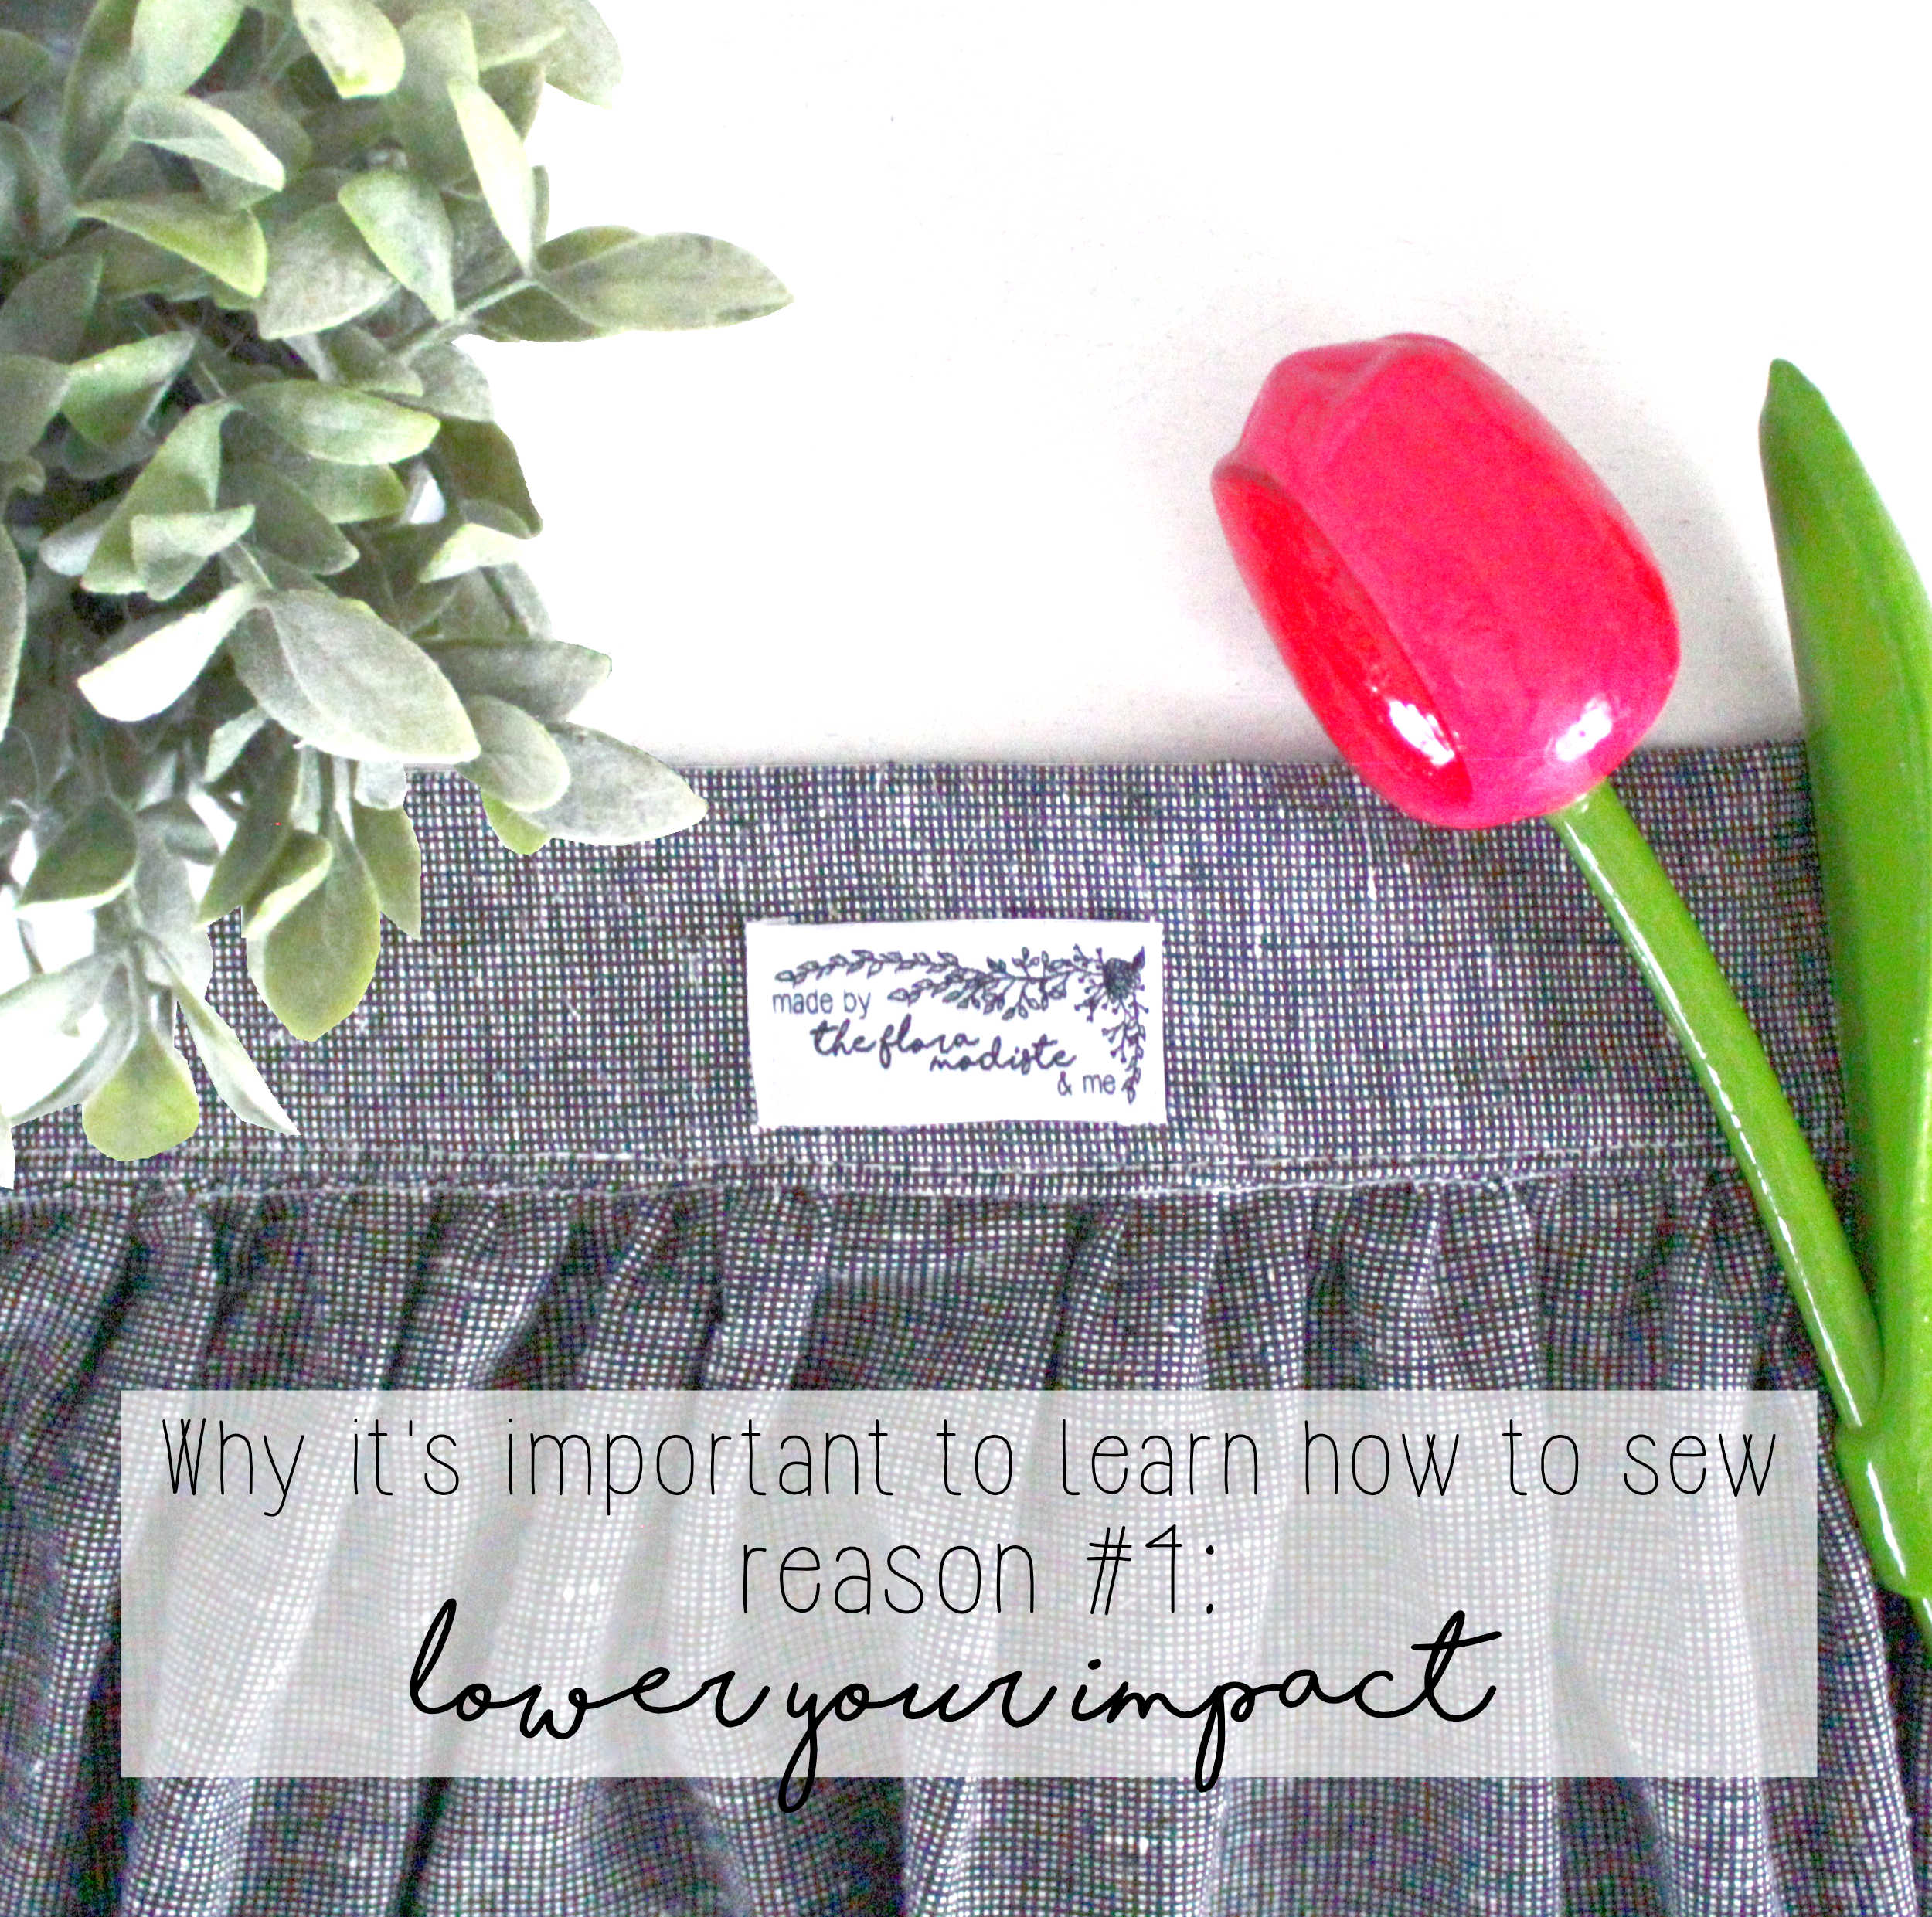 Why It's Important To Learn How To Sew: Reason #4